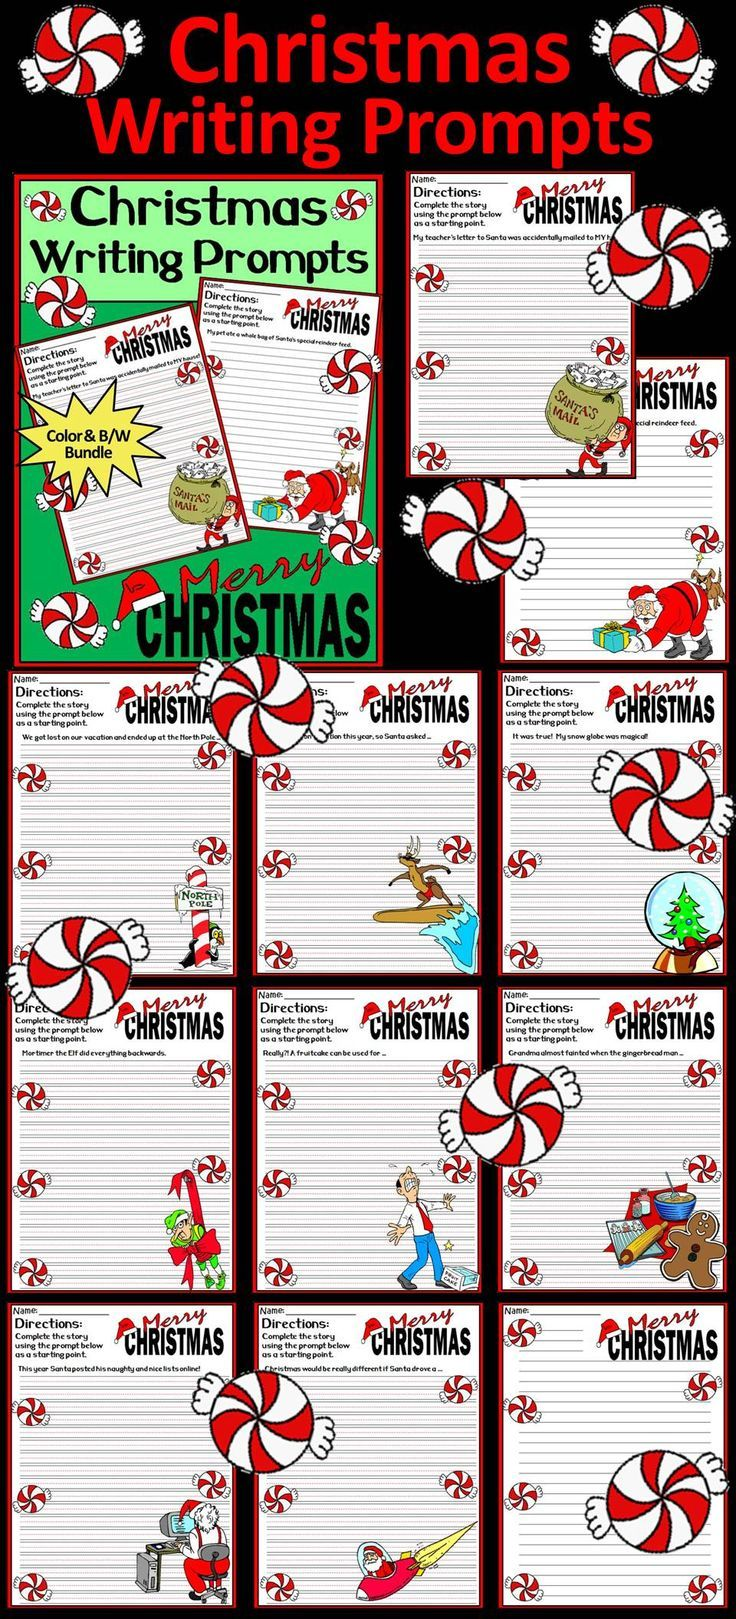 Christmas Writing Prompts Activity Packet:  Christmas Writing Prompts packet contains ten different story starters all with a fun holiday theme.   Christmas Writing Prompts Includes: * Ten Christmas Writing Prompts on both Primary Lined Paper & Regular Lined Paper * Blank Christmas Writing Page with Primary Lines & Blank Christmas Writing Page with Regular Lines  #Christmas #Writing #Language #Arts #Activities #Teacherspayteachers